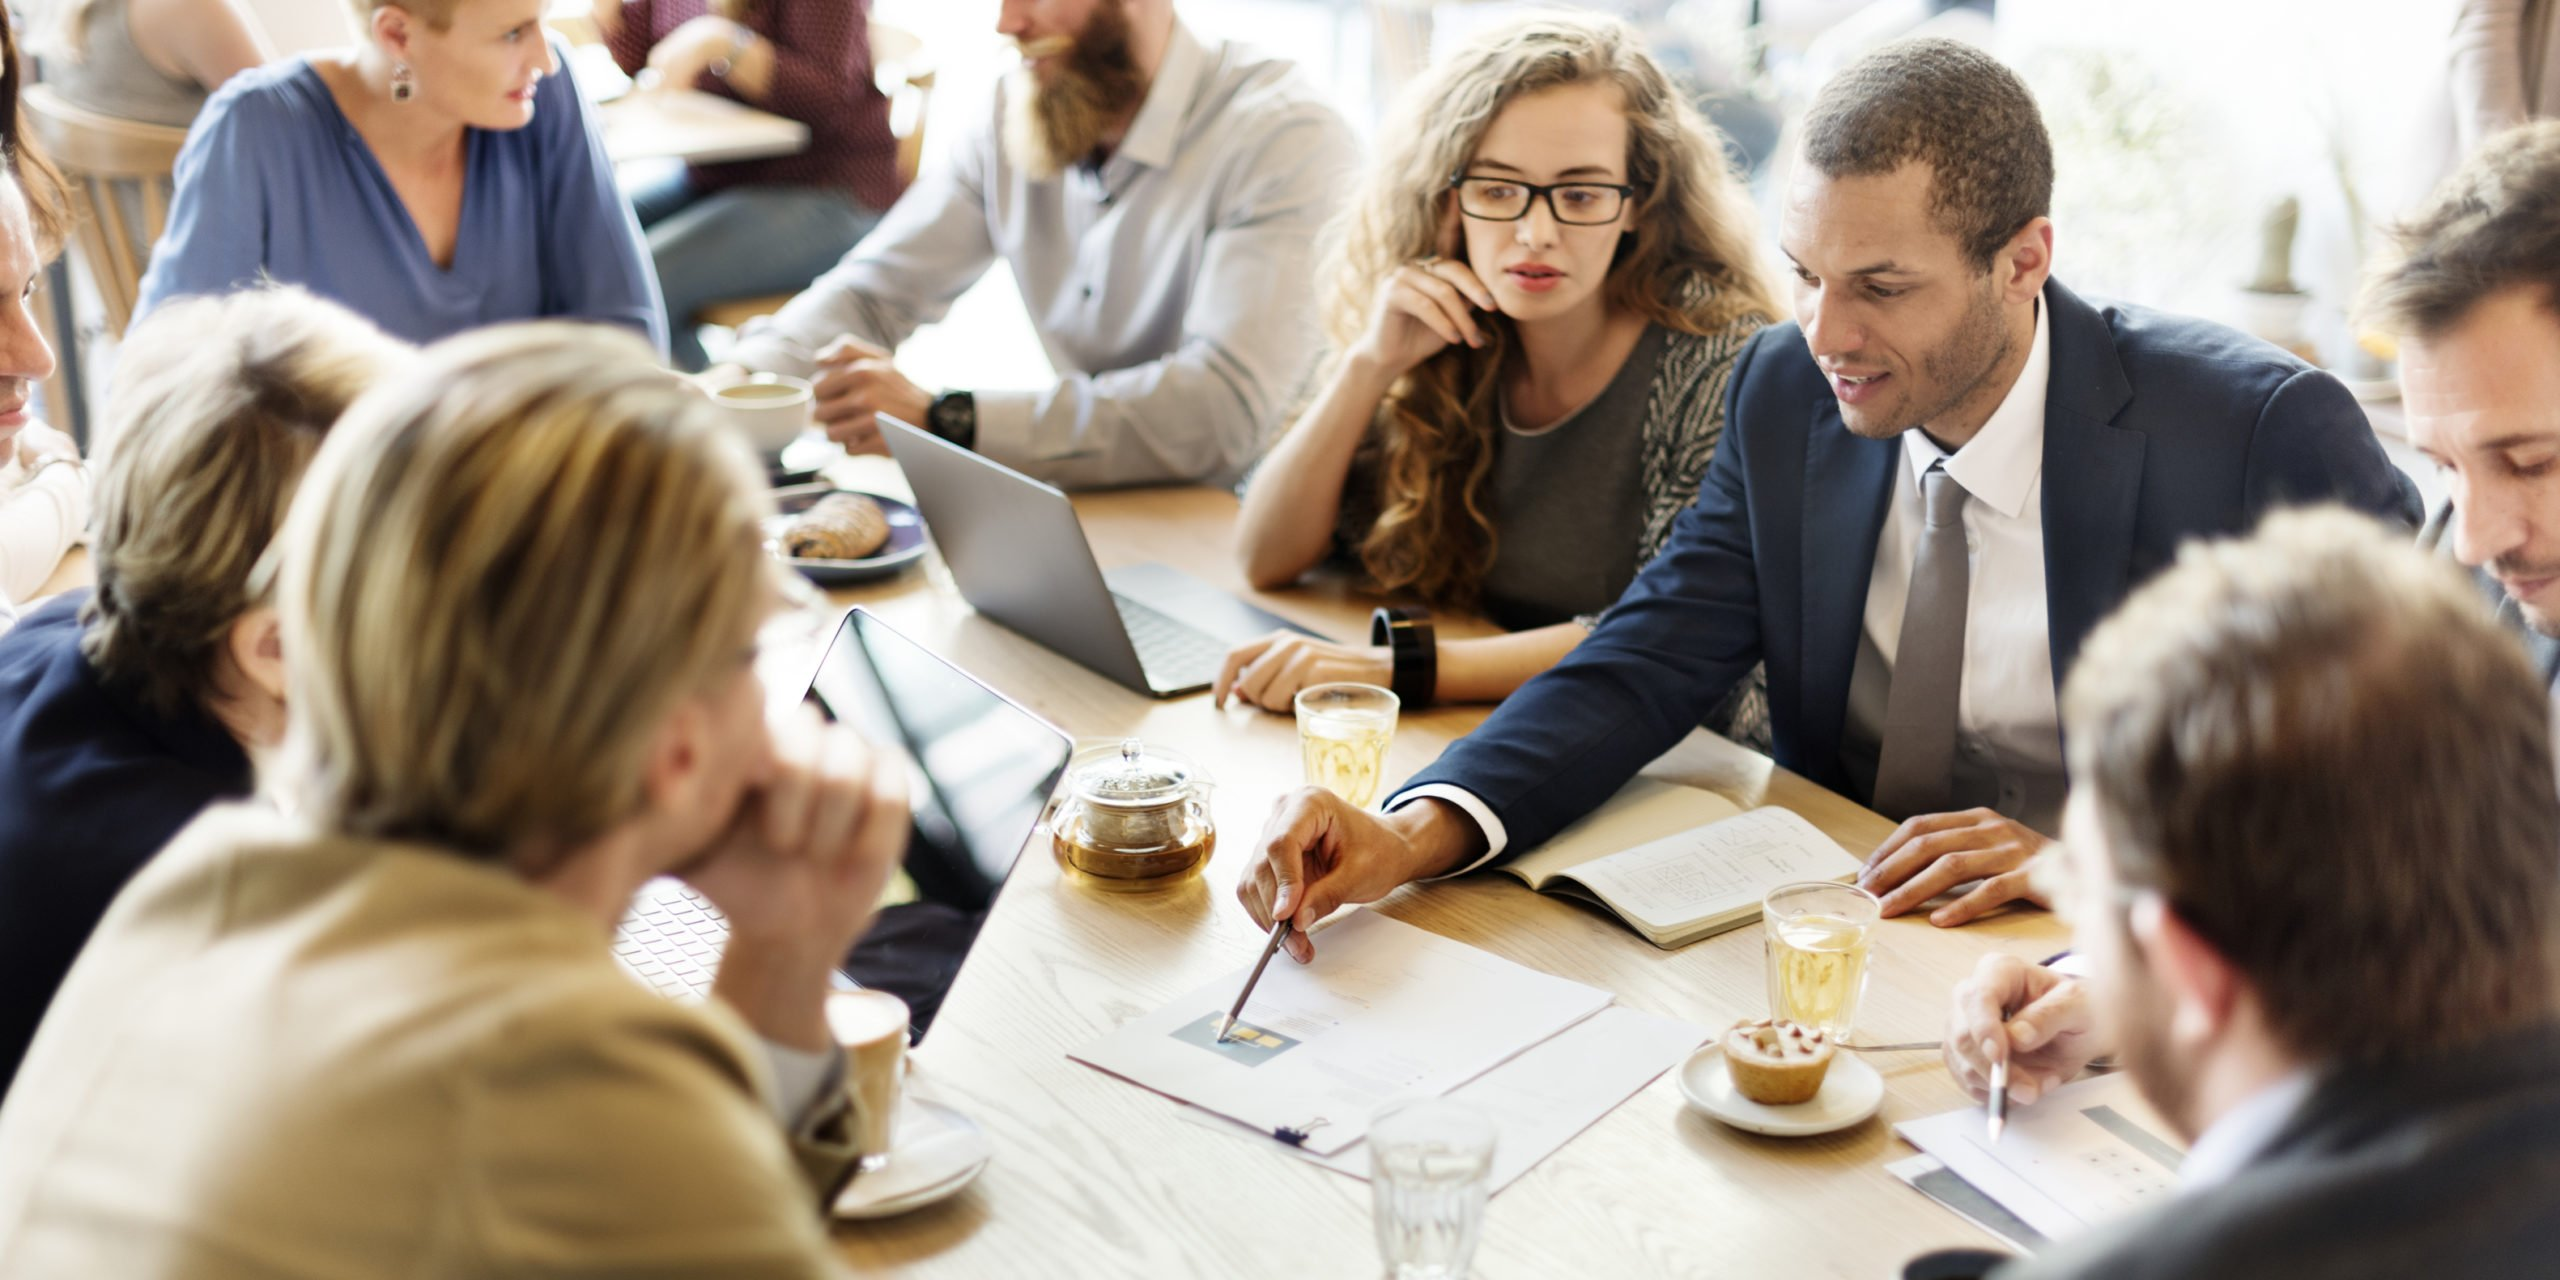 Employee Engagement – The Next Frontier to Exponential Growth